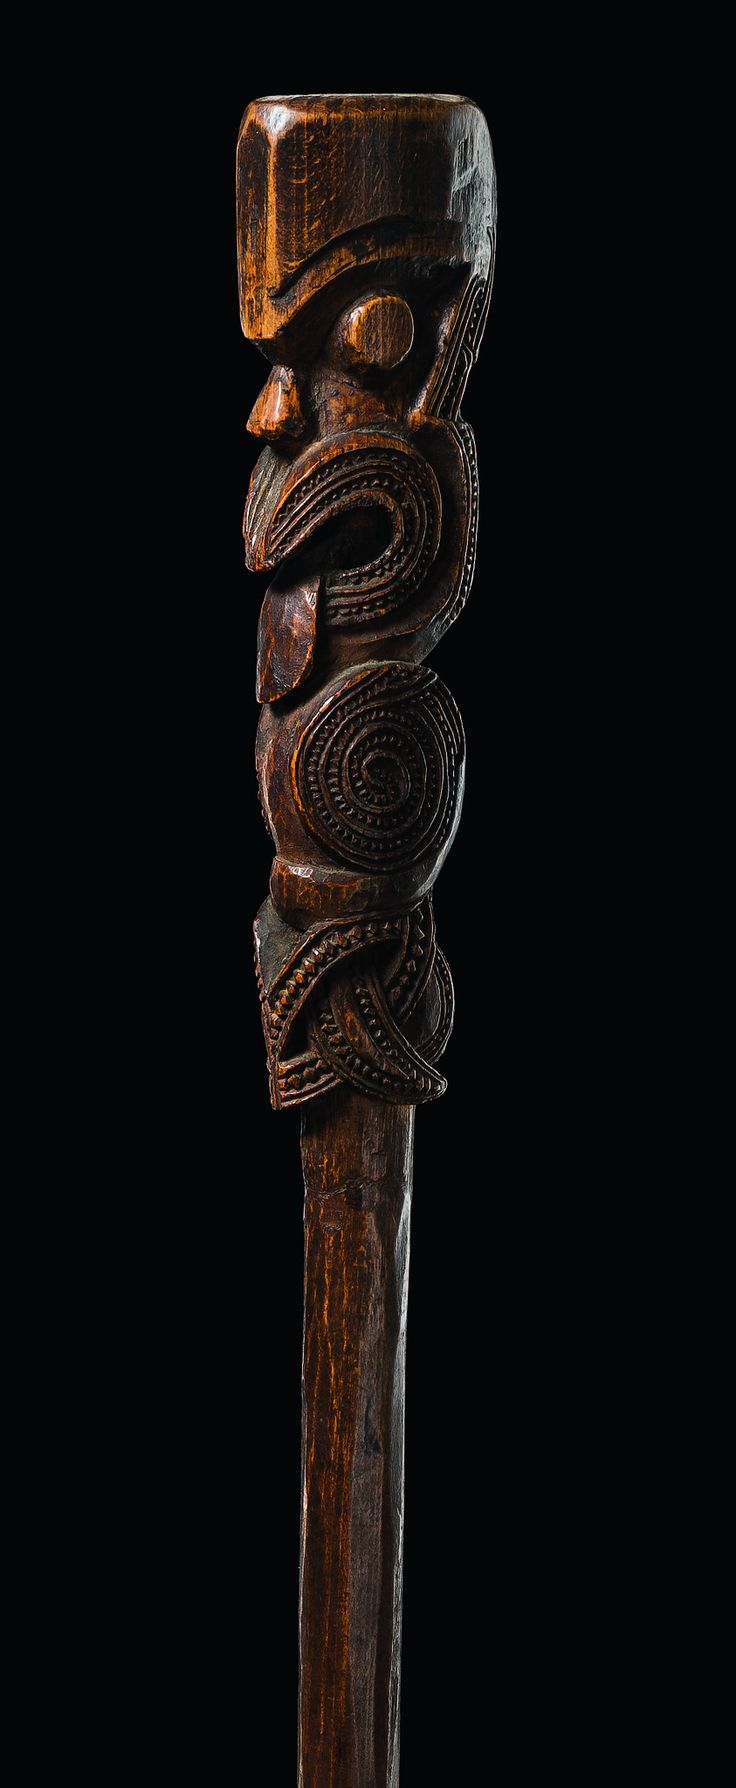 181 best images about Carved Walking Sticks on Pinterest ... - photo#19